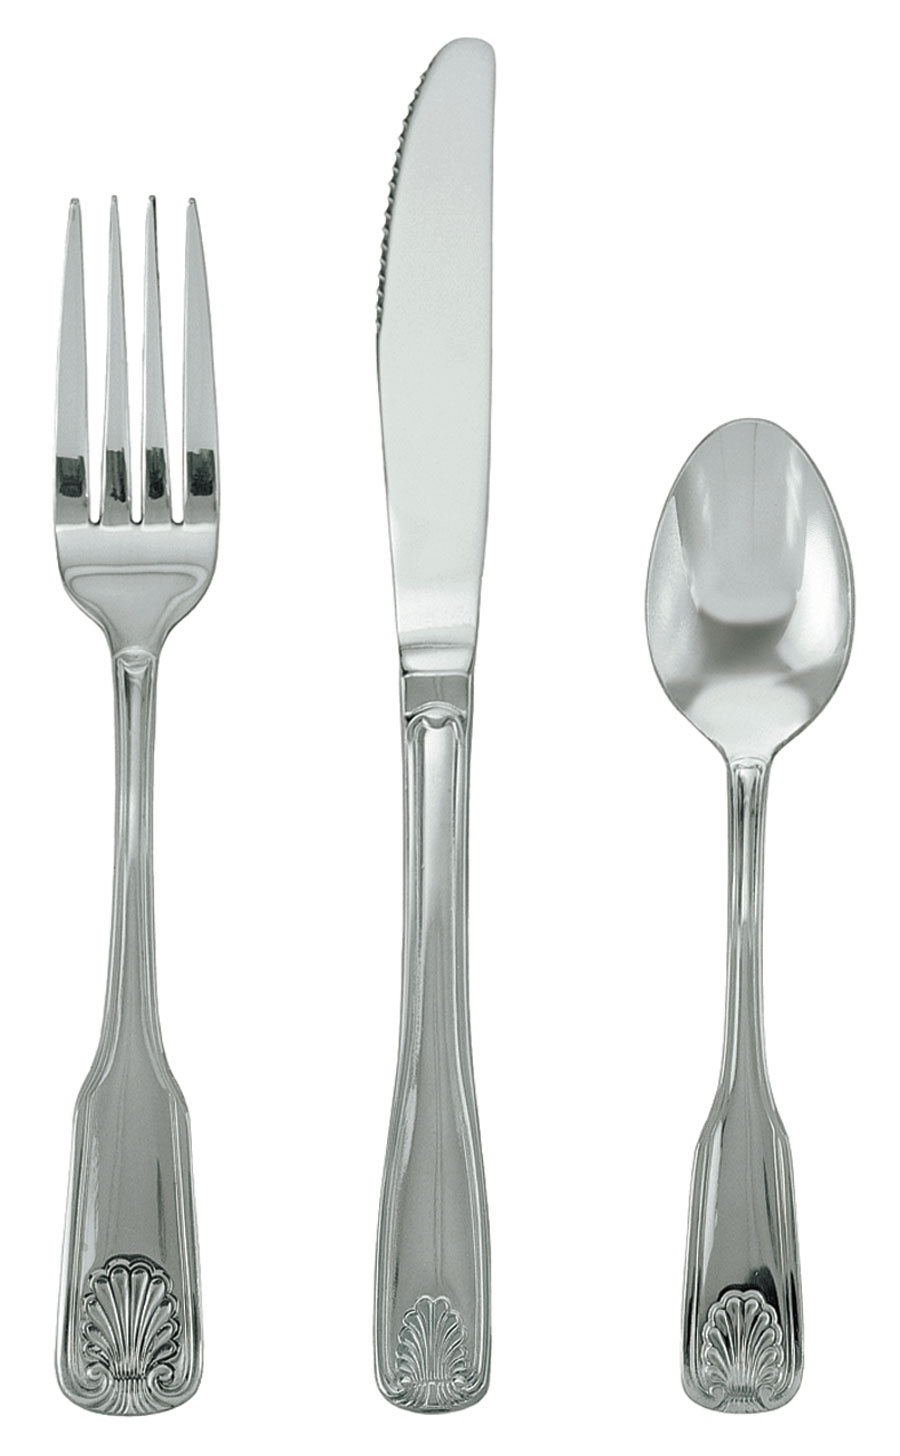 SH-501-N Update International - Shelley - Teaspoon 2.5mm Mirror Finish